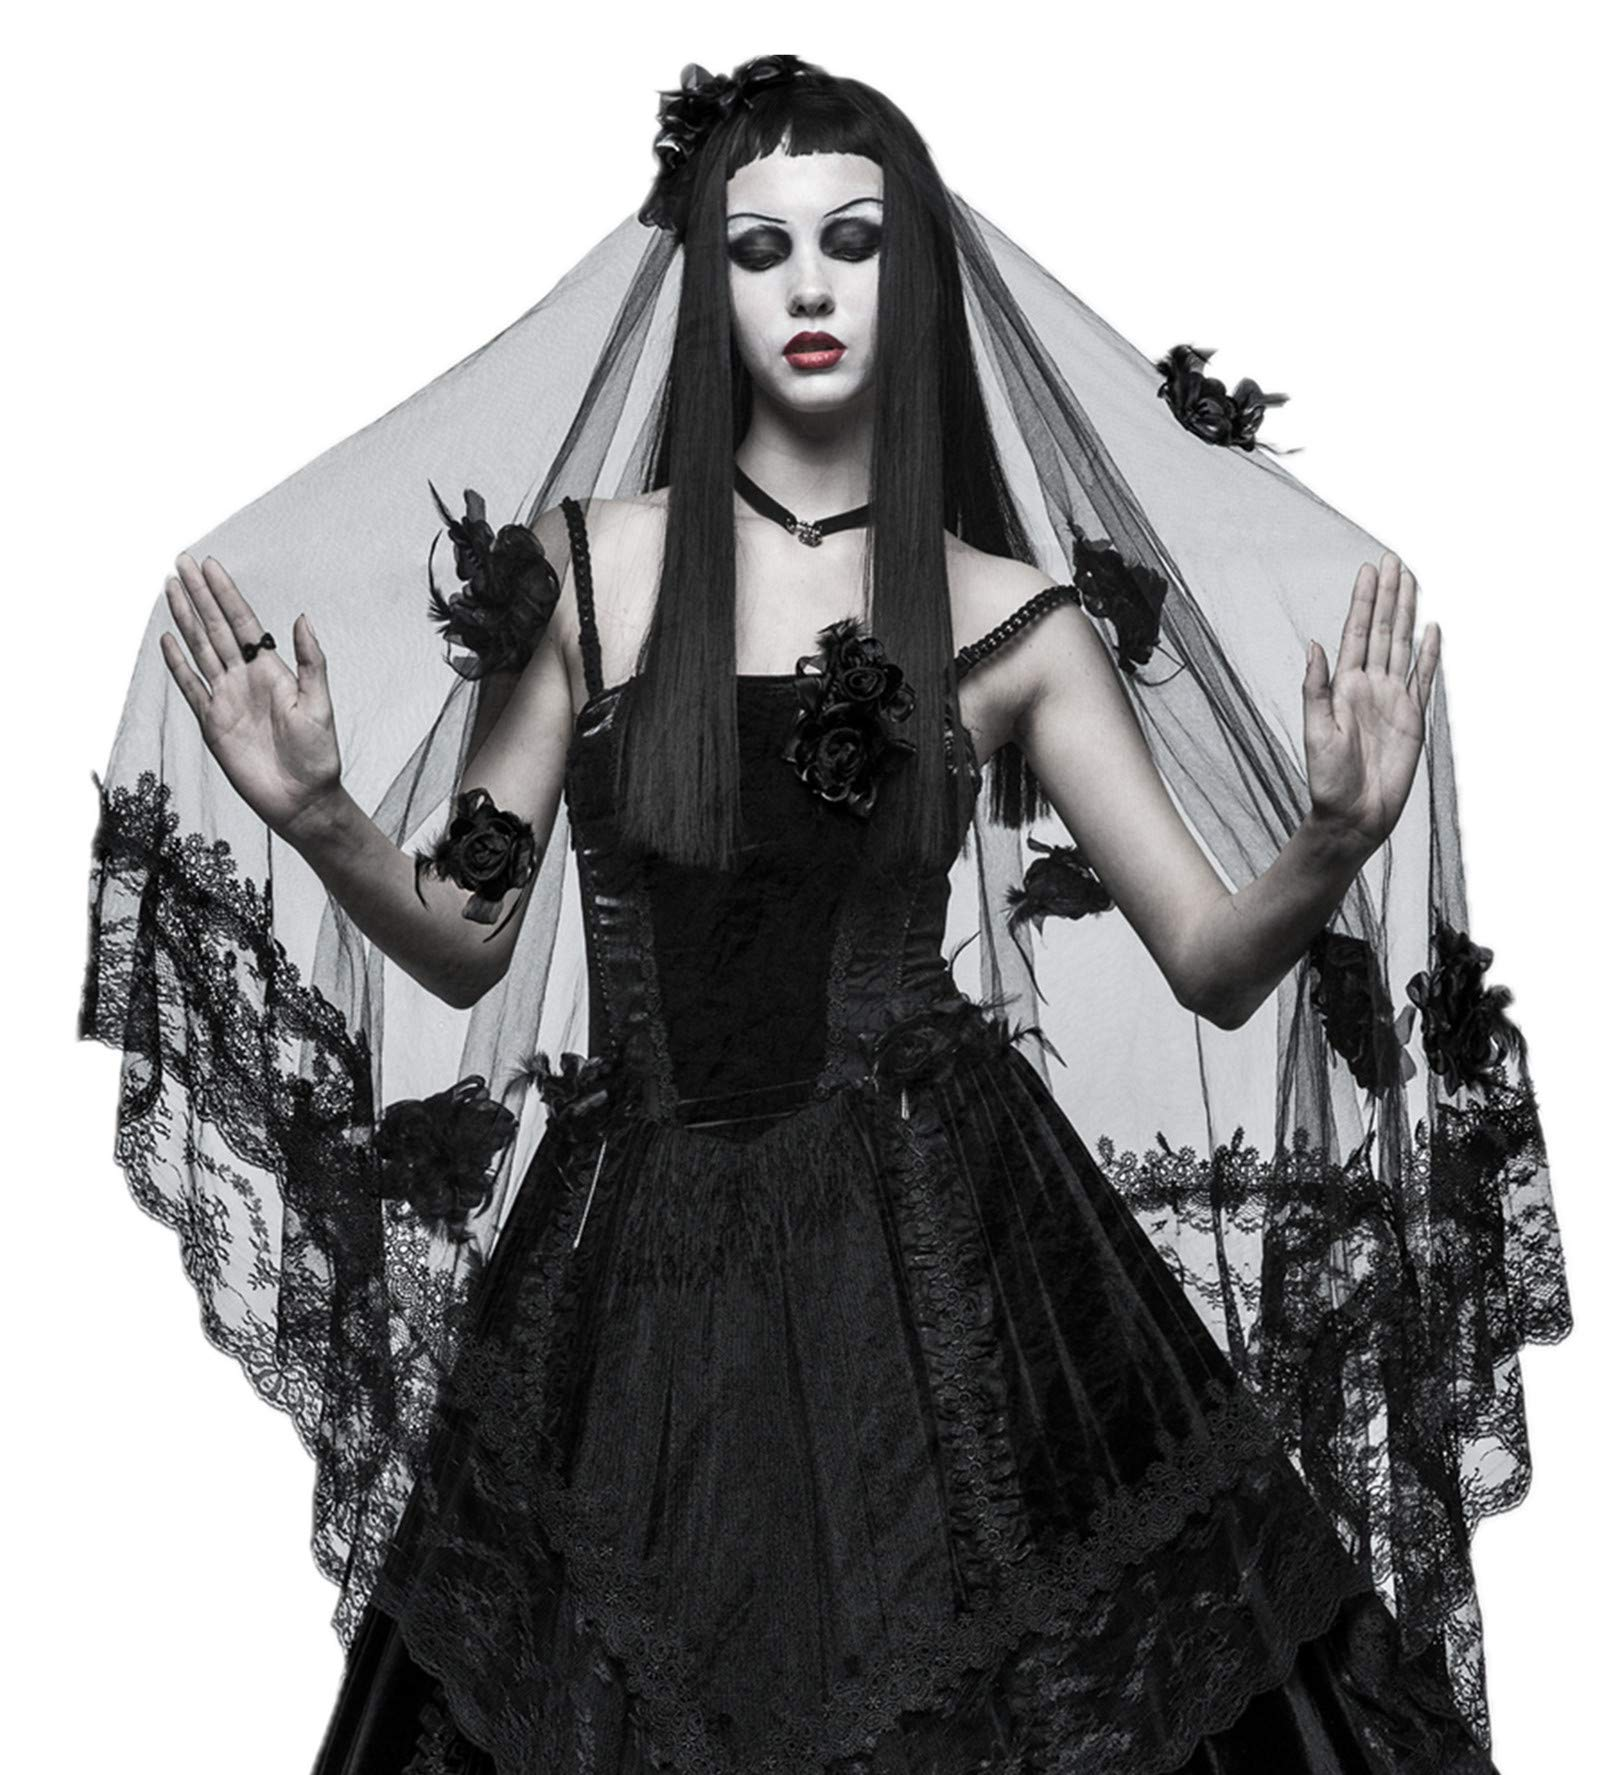 Punk Rave Women Black Gothic Witch Bridal Wedding Lace Mesh Veil Hair Accessory (One Size)